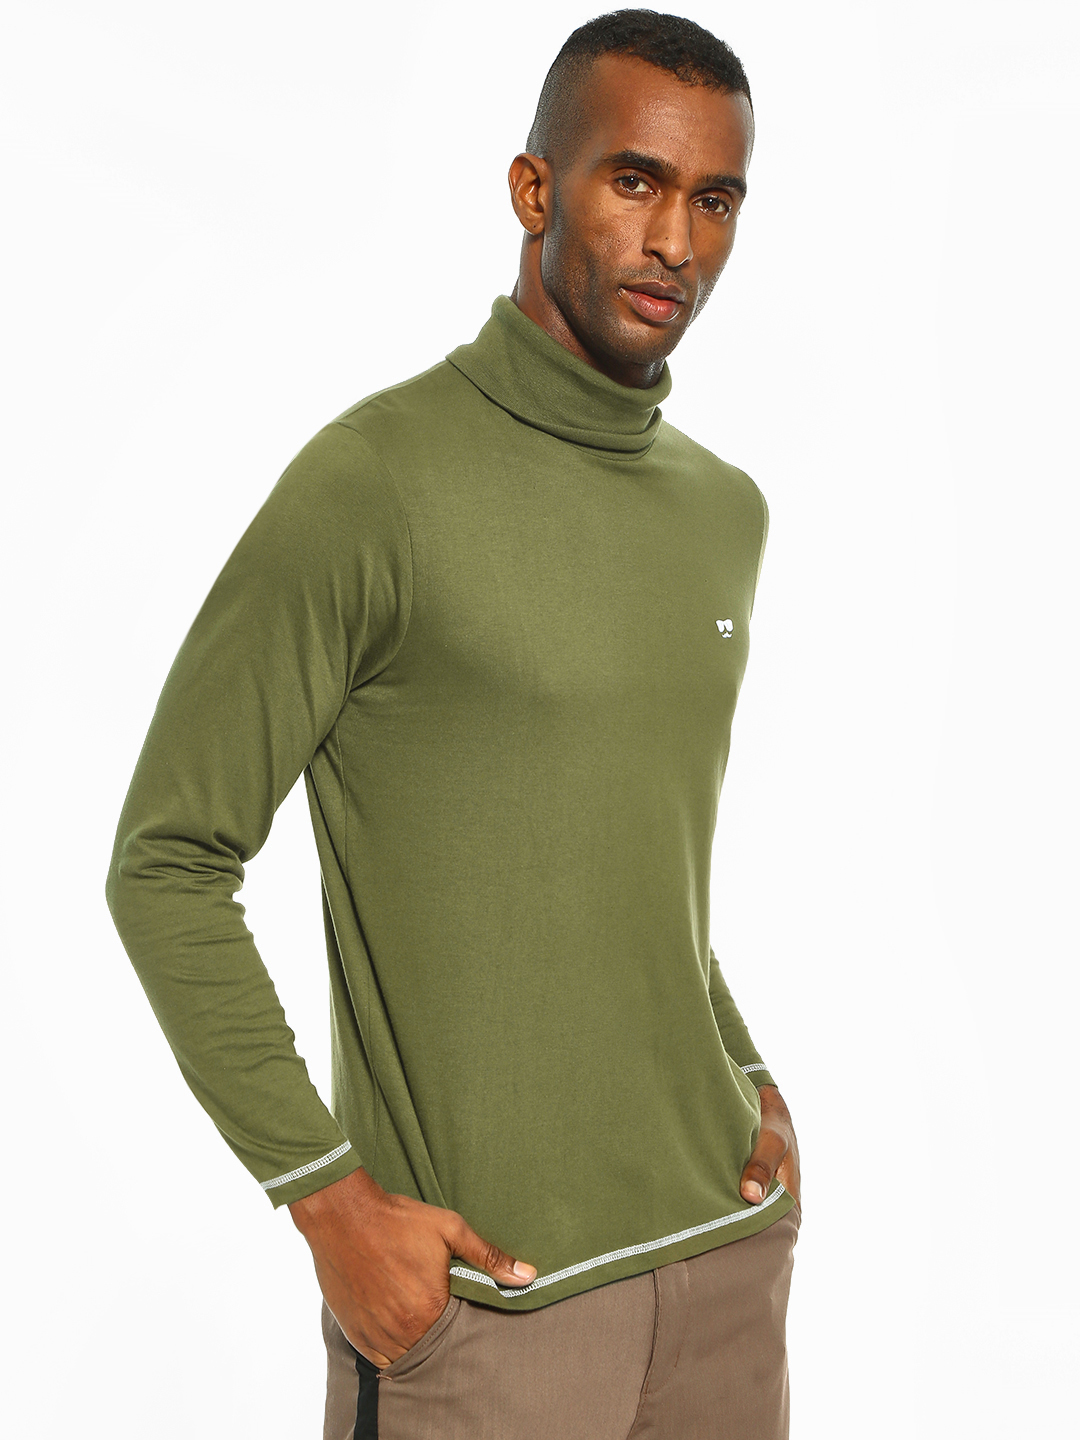 Garcon Green Turtle Neck Long Sleeve T-Shirt 1